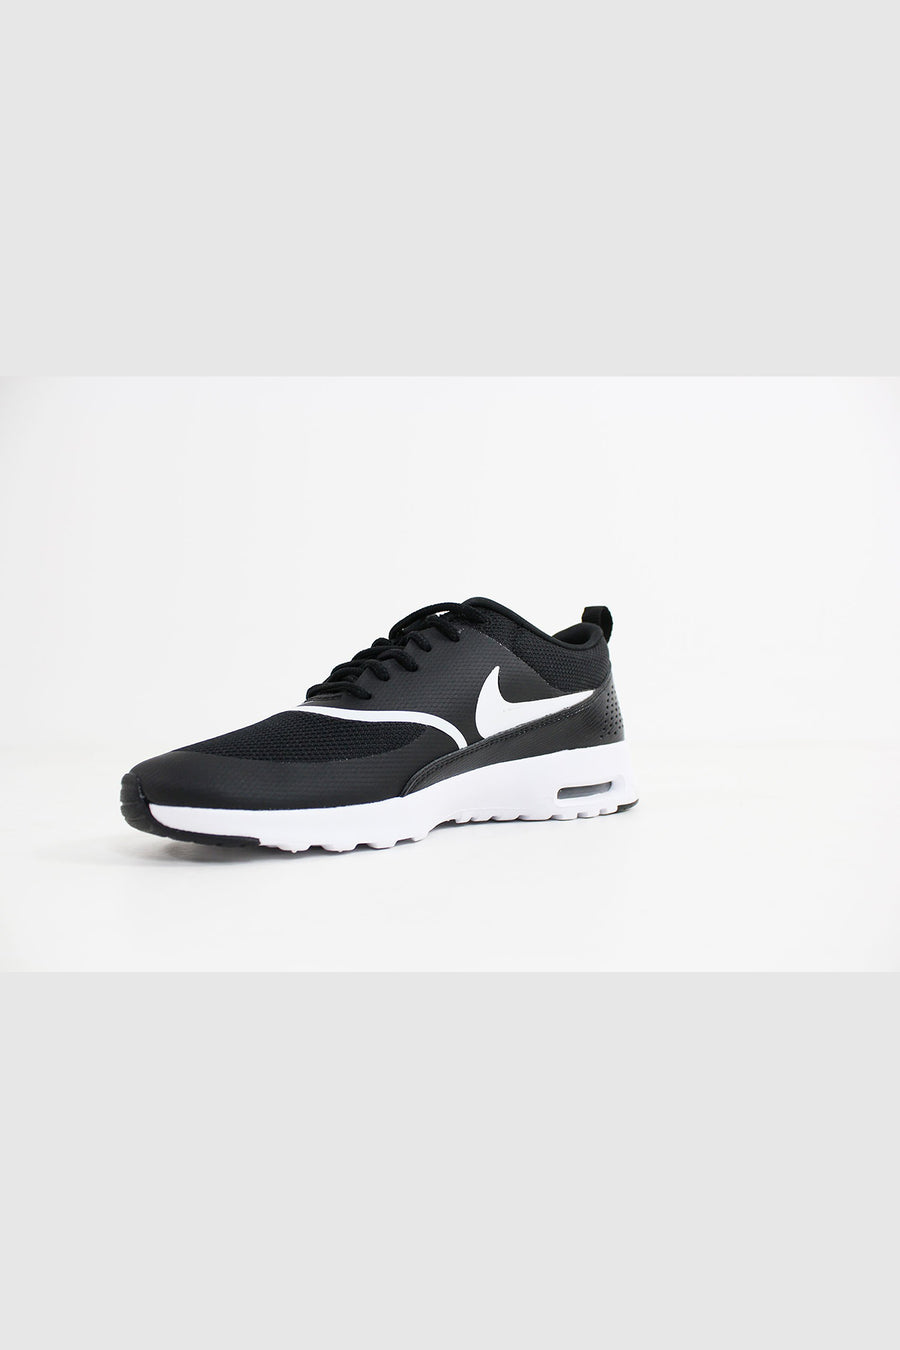 Nike - Air Max Thea Women (Black/White) 599409-028